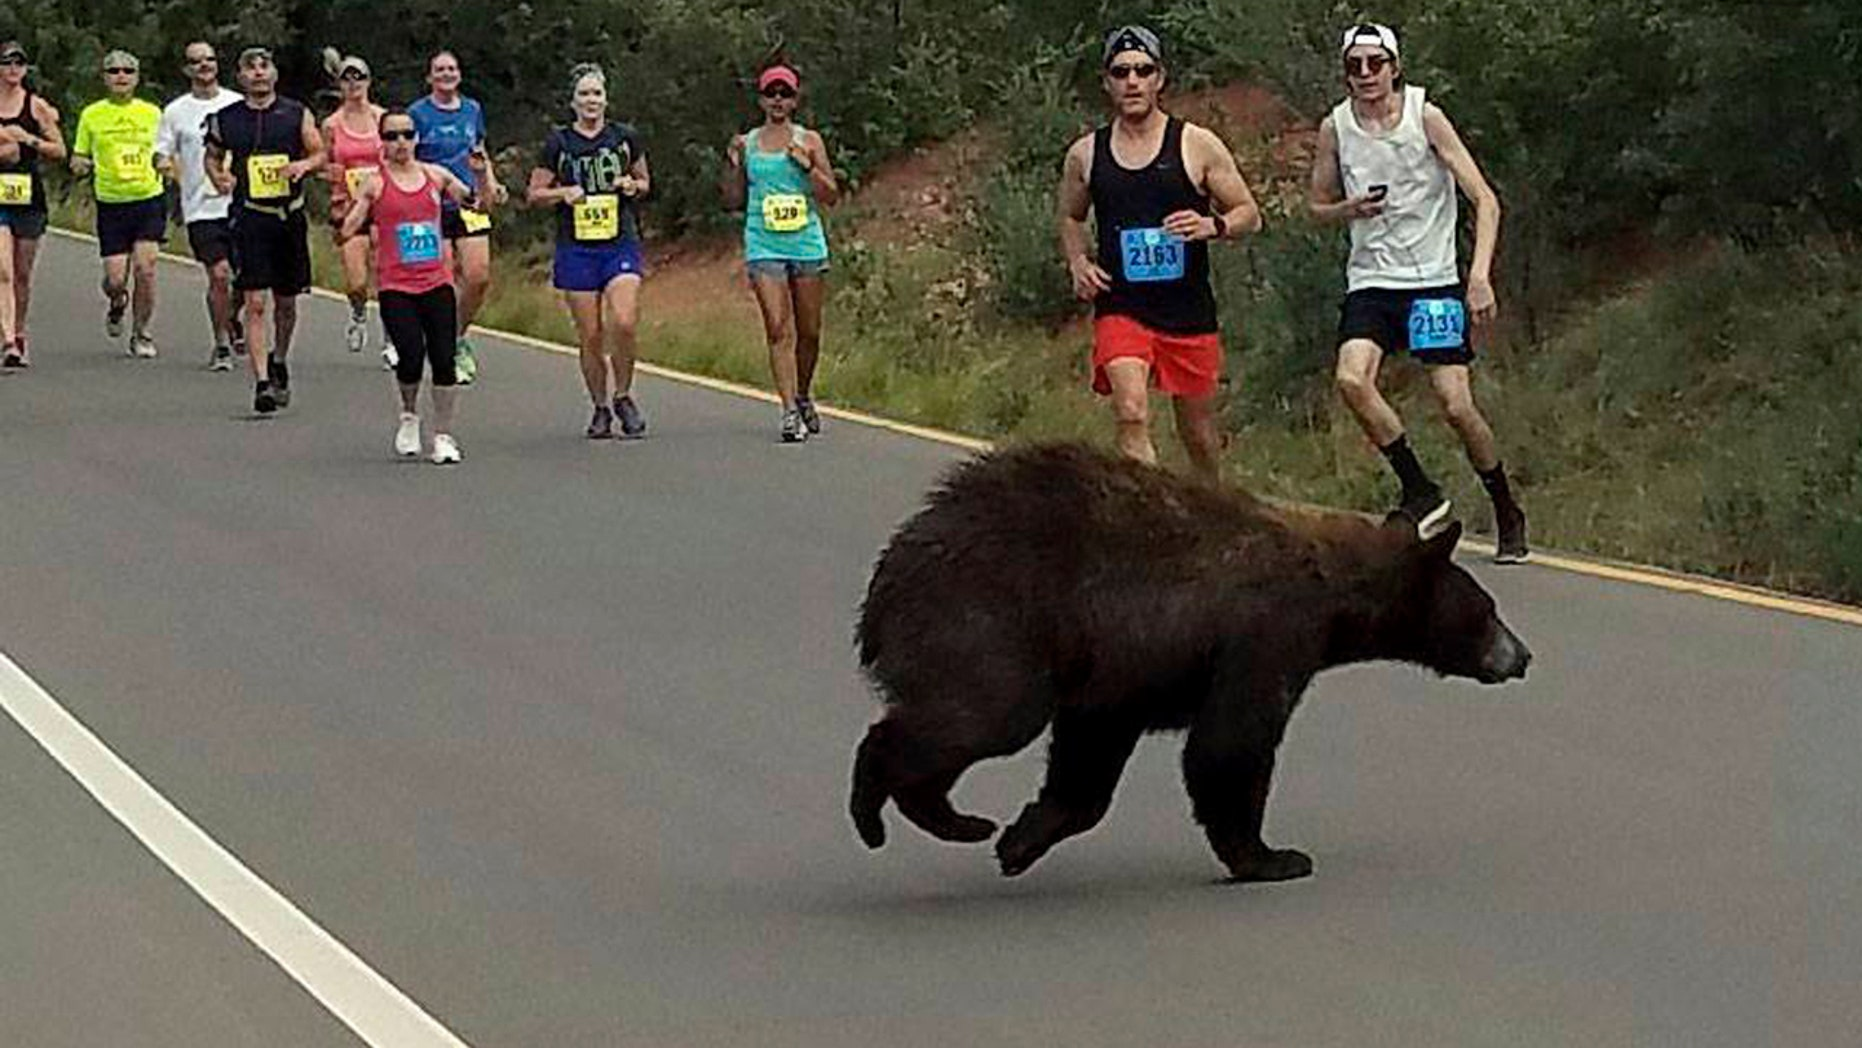 In this photo provided by Donald Sanborn, a bear walks across the street as runners compete in the Garden of the Gods 10 Mile Run near Colorado Springs, Colo., Sunday, June 11, 2017.